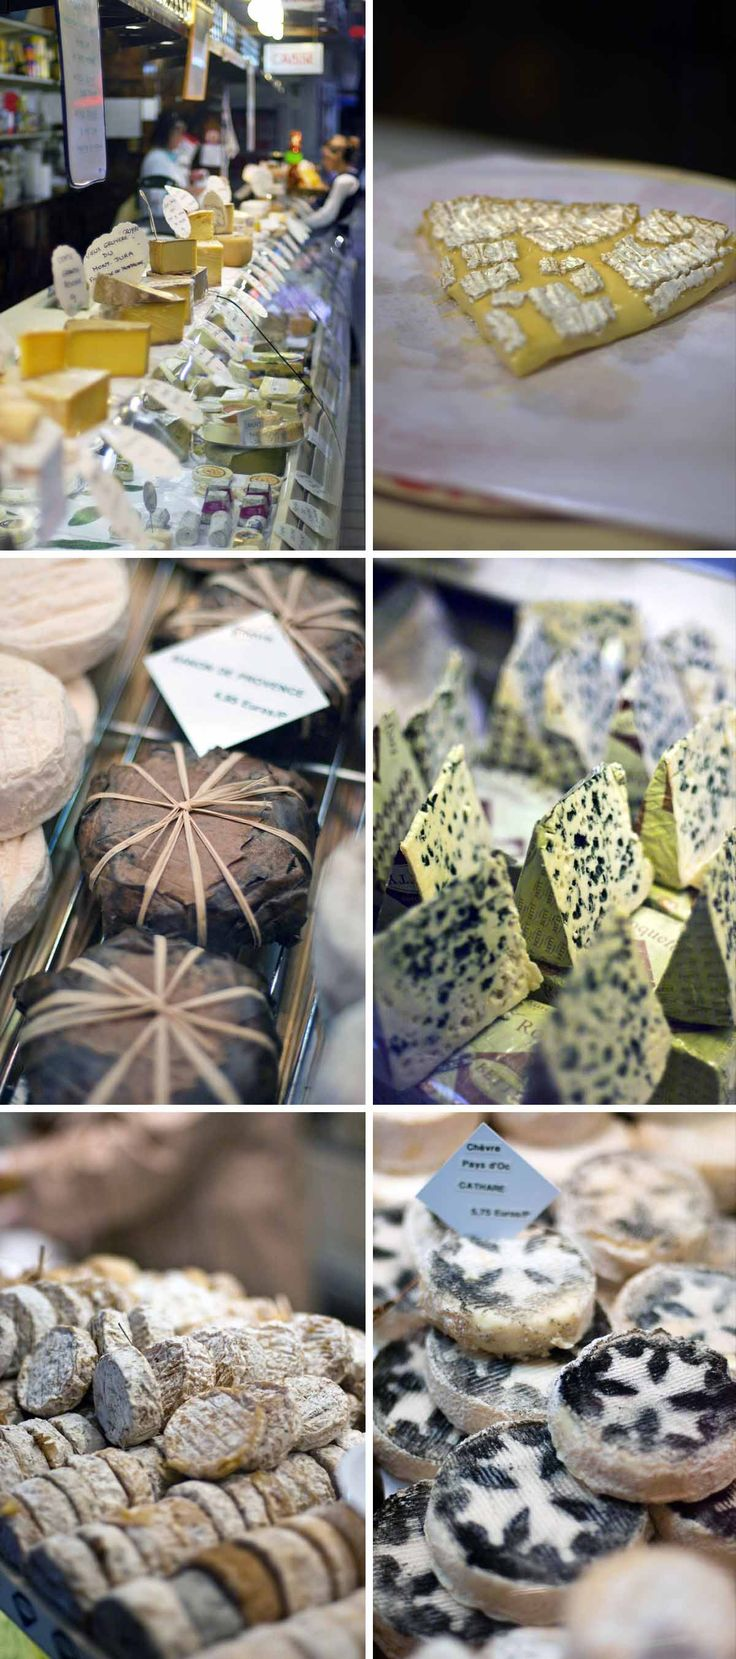 Betty Fromager at Marche Victor Hugo, Toulouse | heneedsfood.com